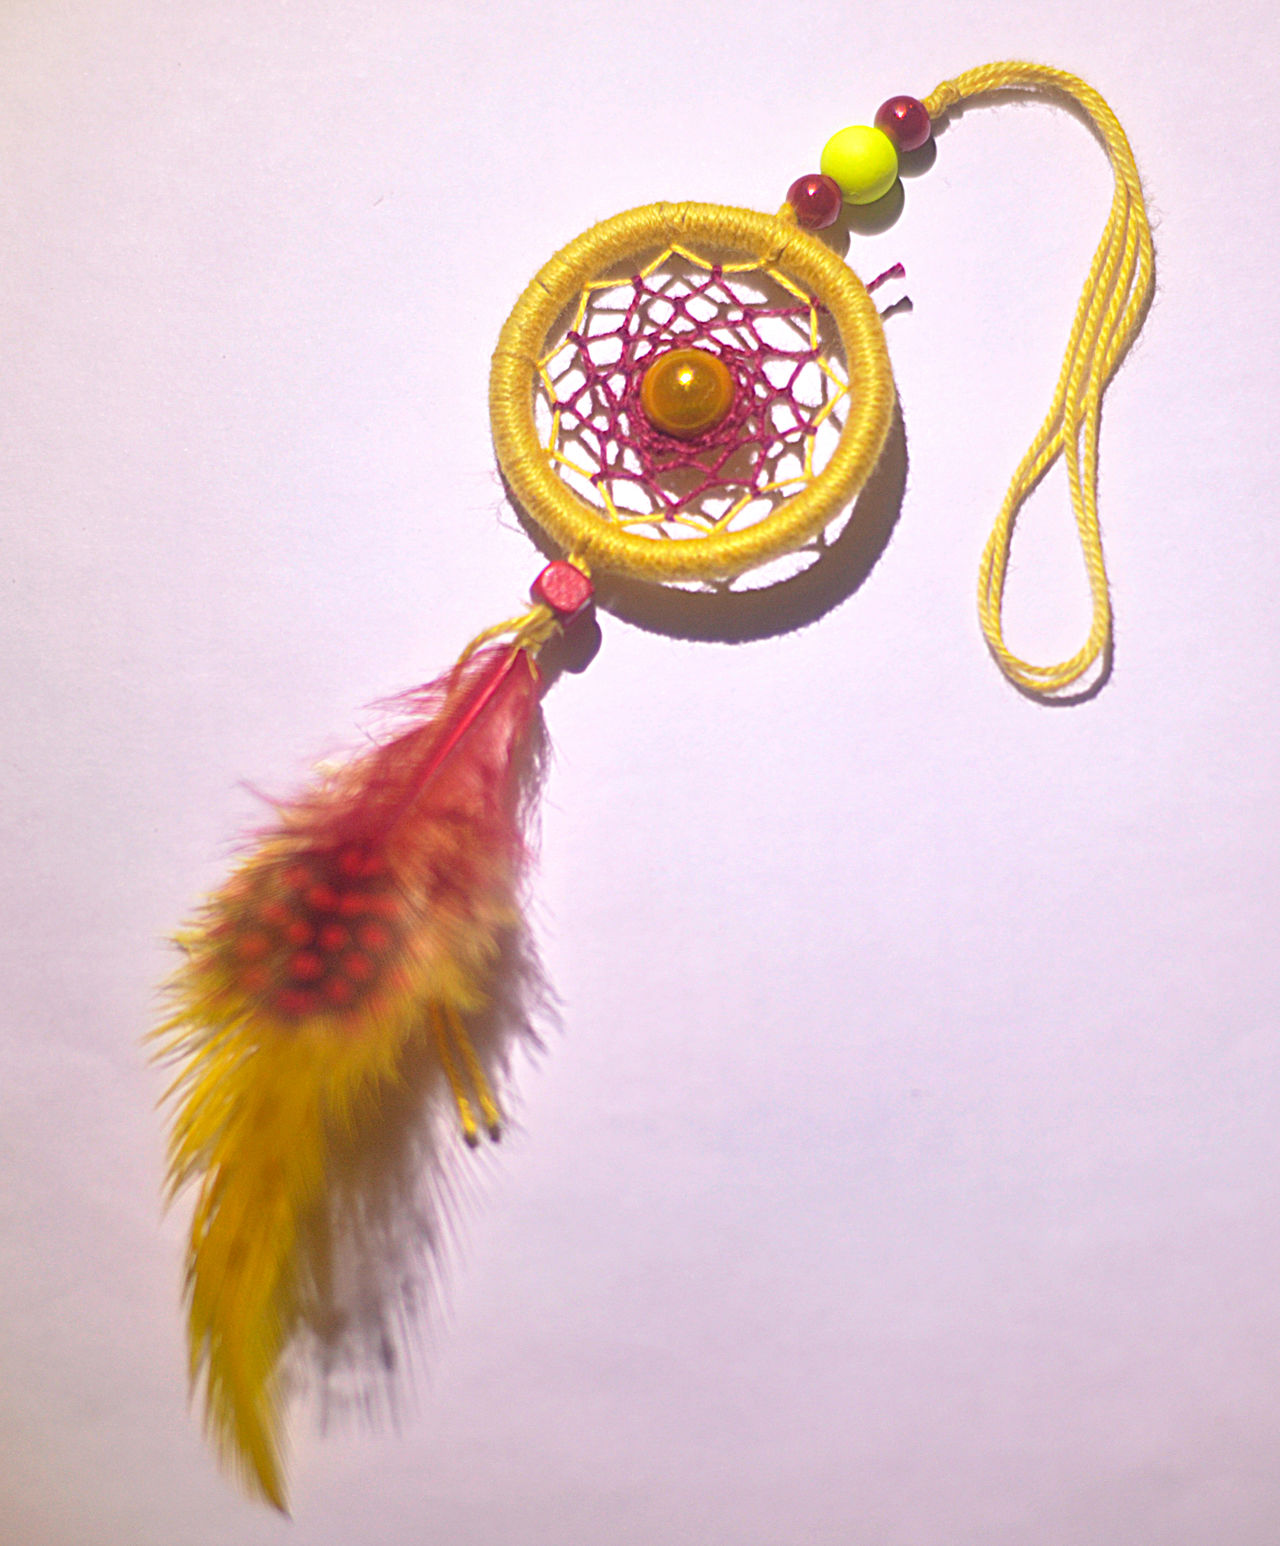 "In some Native American cultures, a dreamcatcher (or dream catcher; Lakota: iháŋbla gmunka, Ojibwe: asabikeshiinh, the inanimate form of the word for ""spider"" or Ojibwe: bawaajige nagwaagan meaning ""dream snare"") is a handmade object based on a willow hoop, on which is woven a loose net or web. Catcher Charm Dream Dreamcatcher Luck Pink Web Yellow First Eyeem Photo"